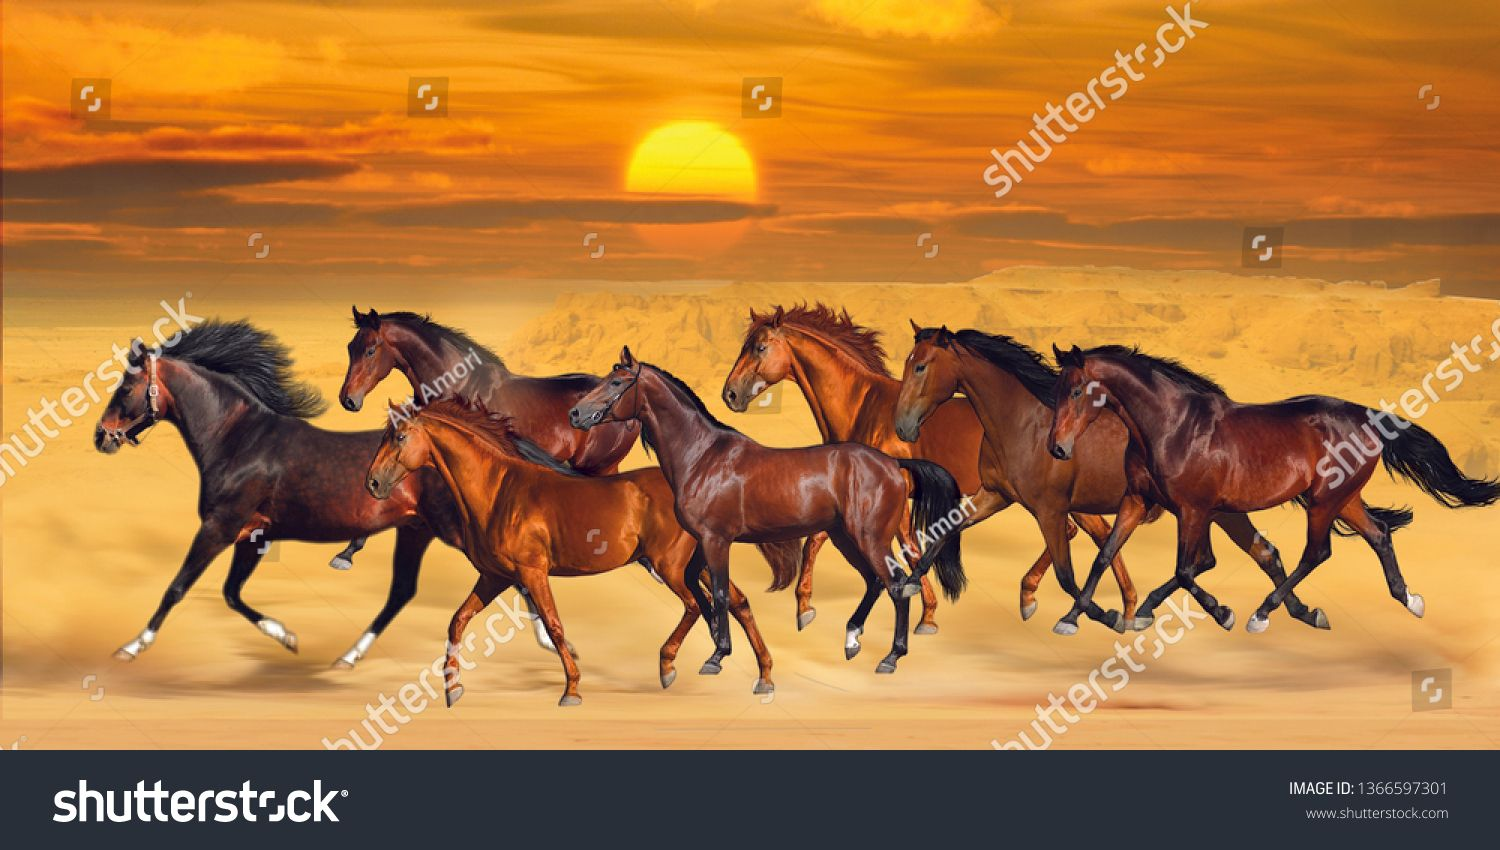 Brown Seven Running Horses On Sea Cost Sunshine Natural Background 3d Wallpaper Graphical Poster Modern Artwo Running Horses Stock Illustration Modern Artwork